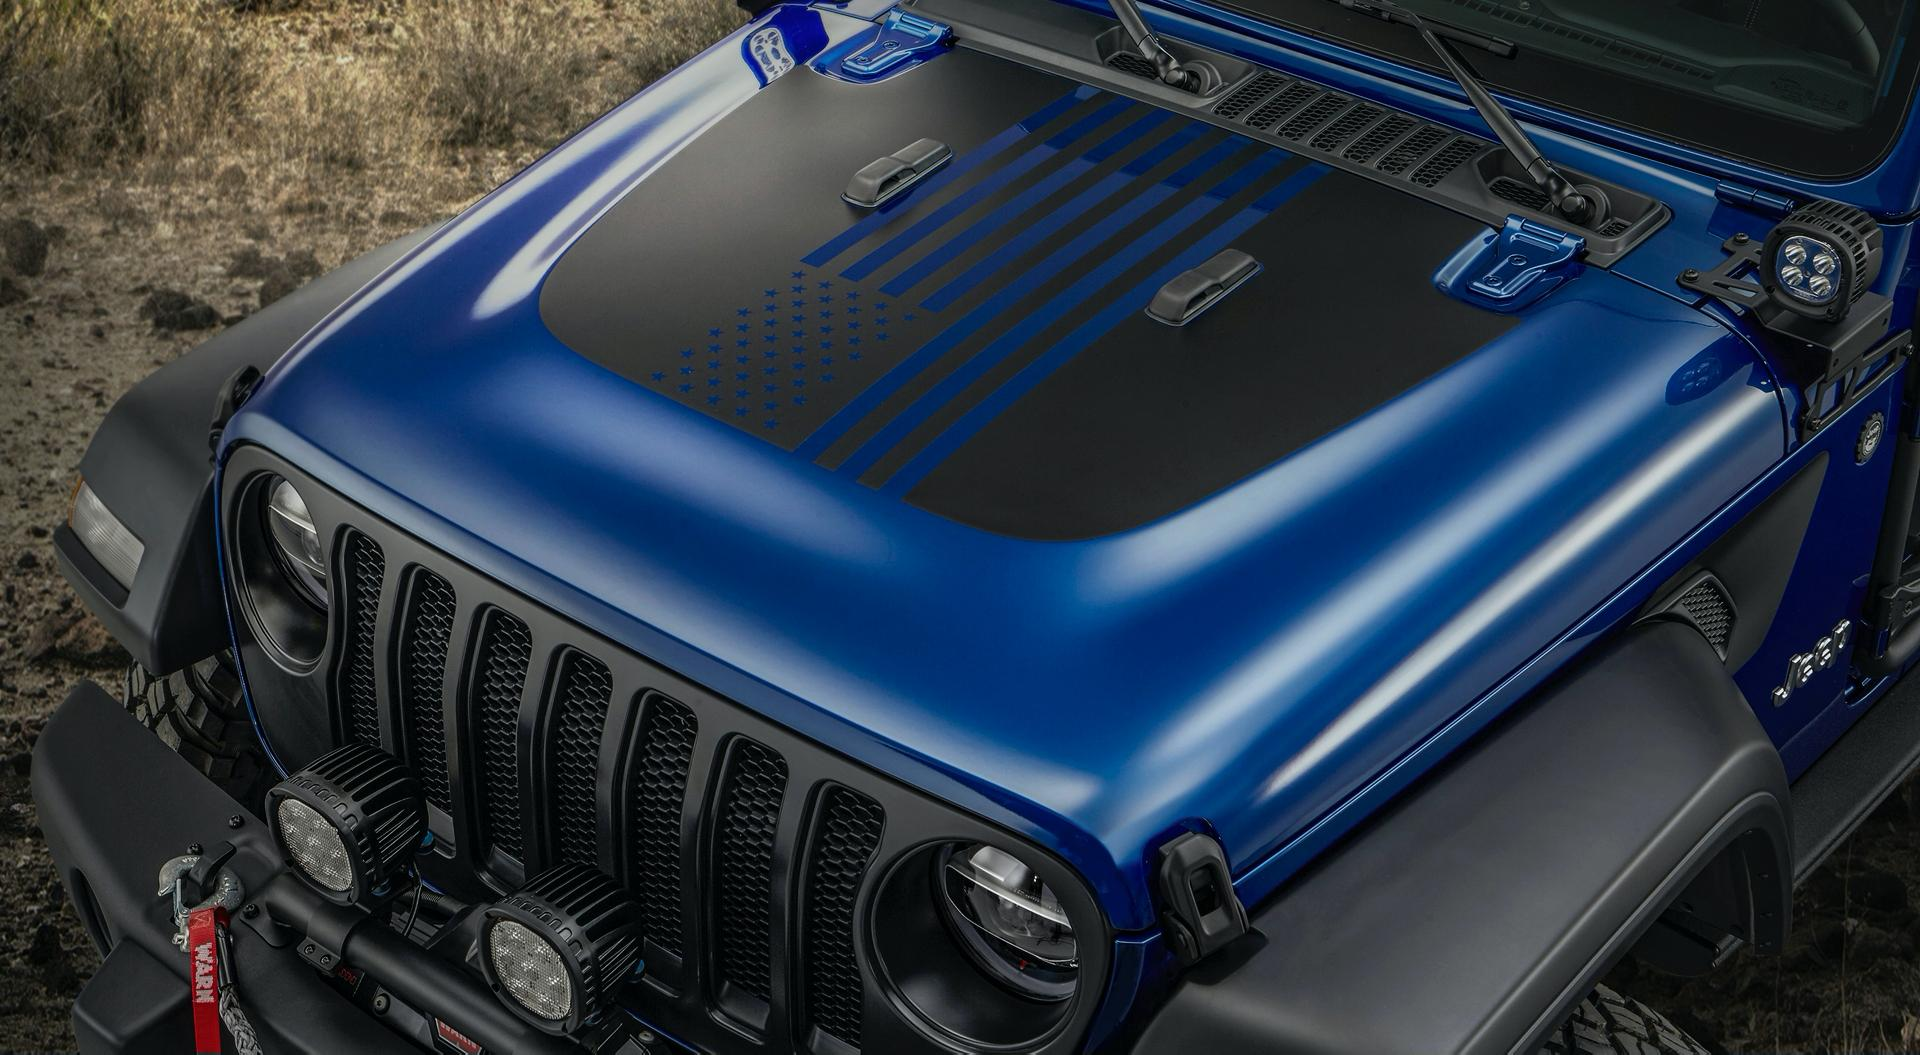 Jeep-Wrangler-JPP-20-Limited-Edition-3